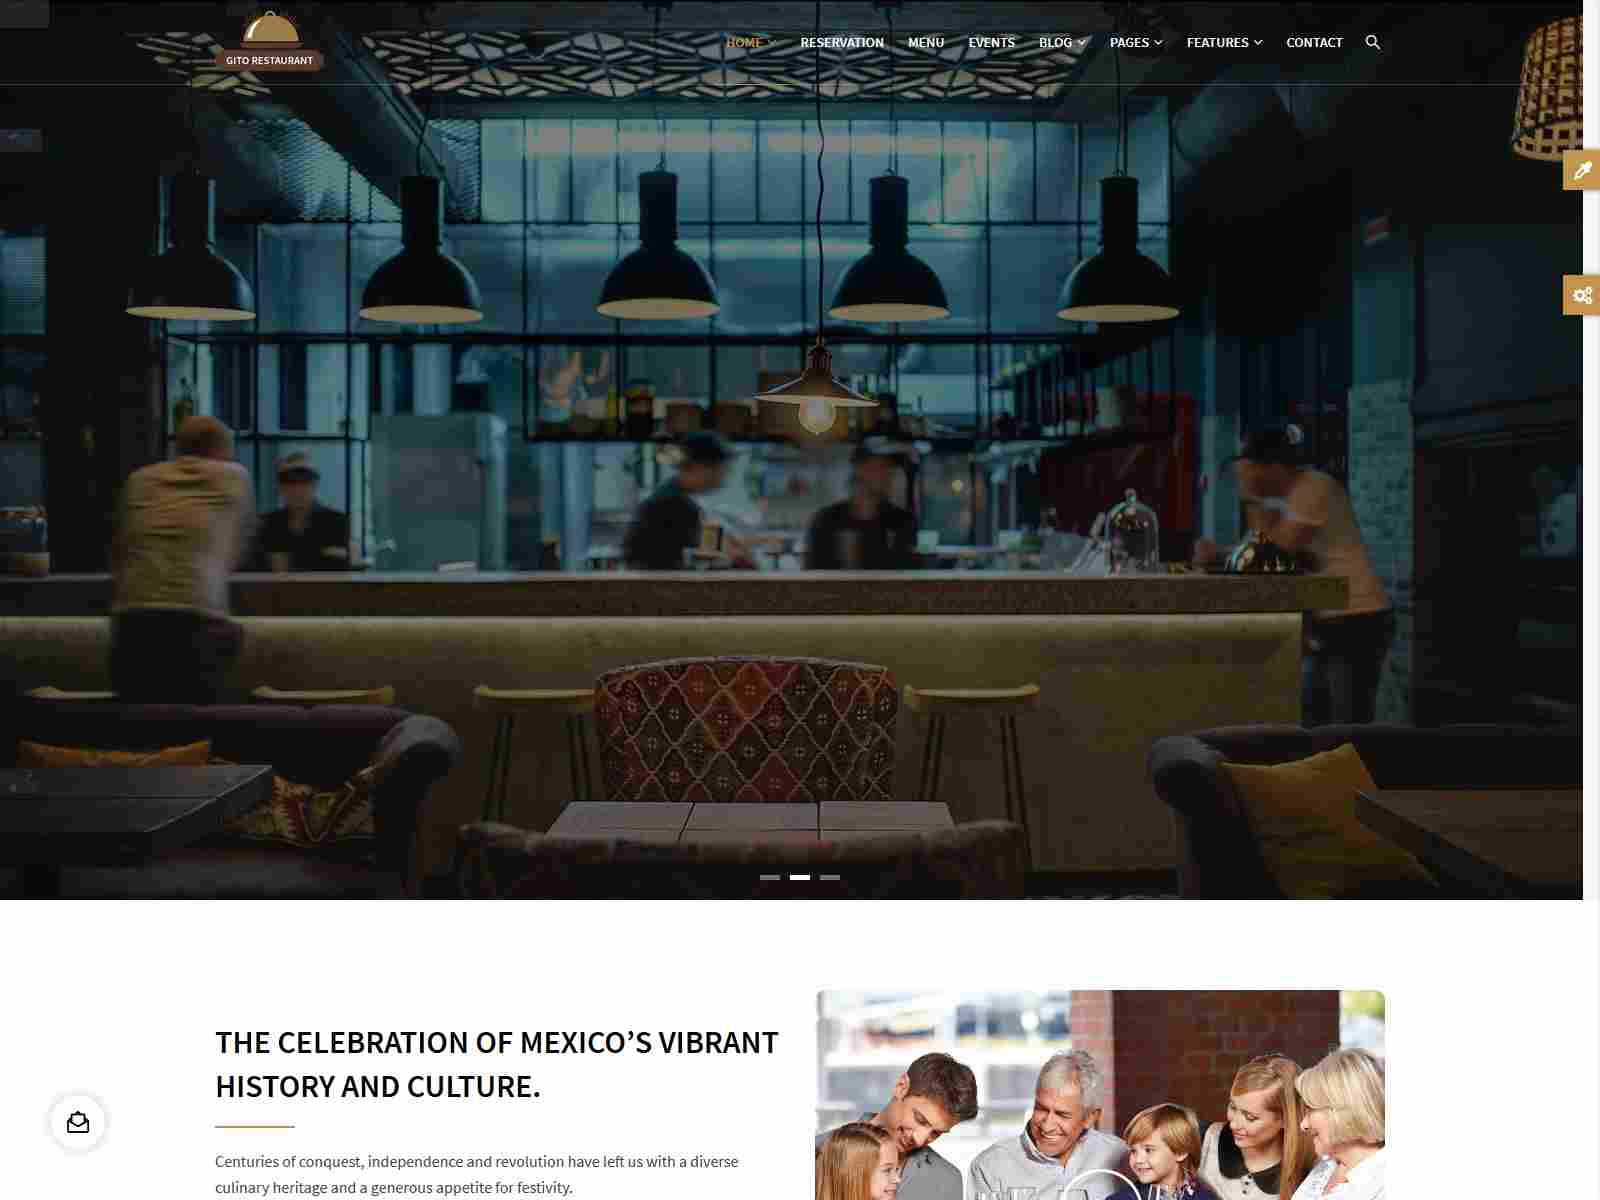 GITO - Cafe & Restaurant Drupal 8.7 Theme